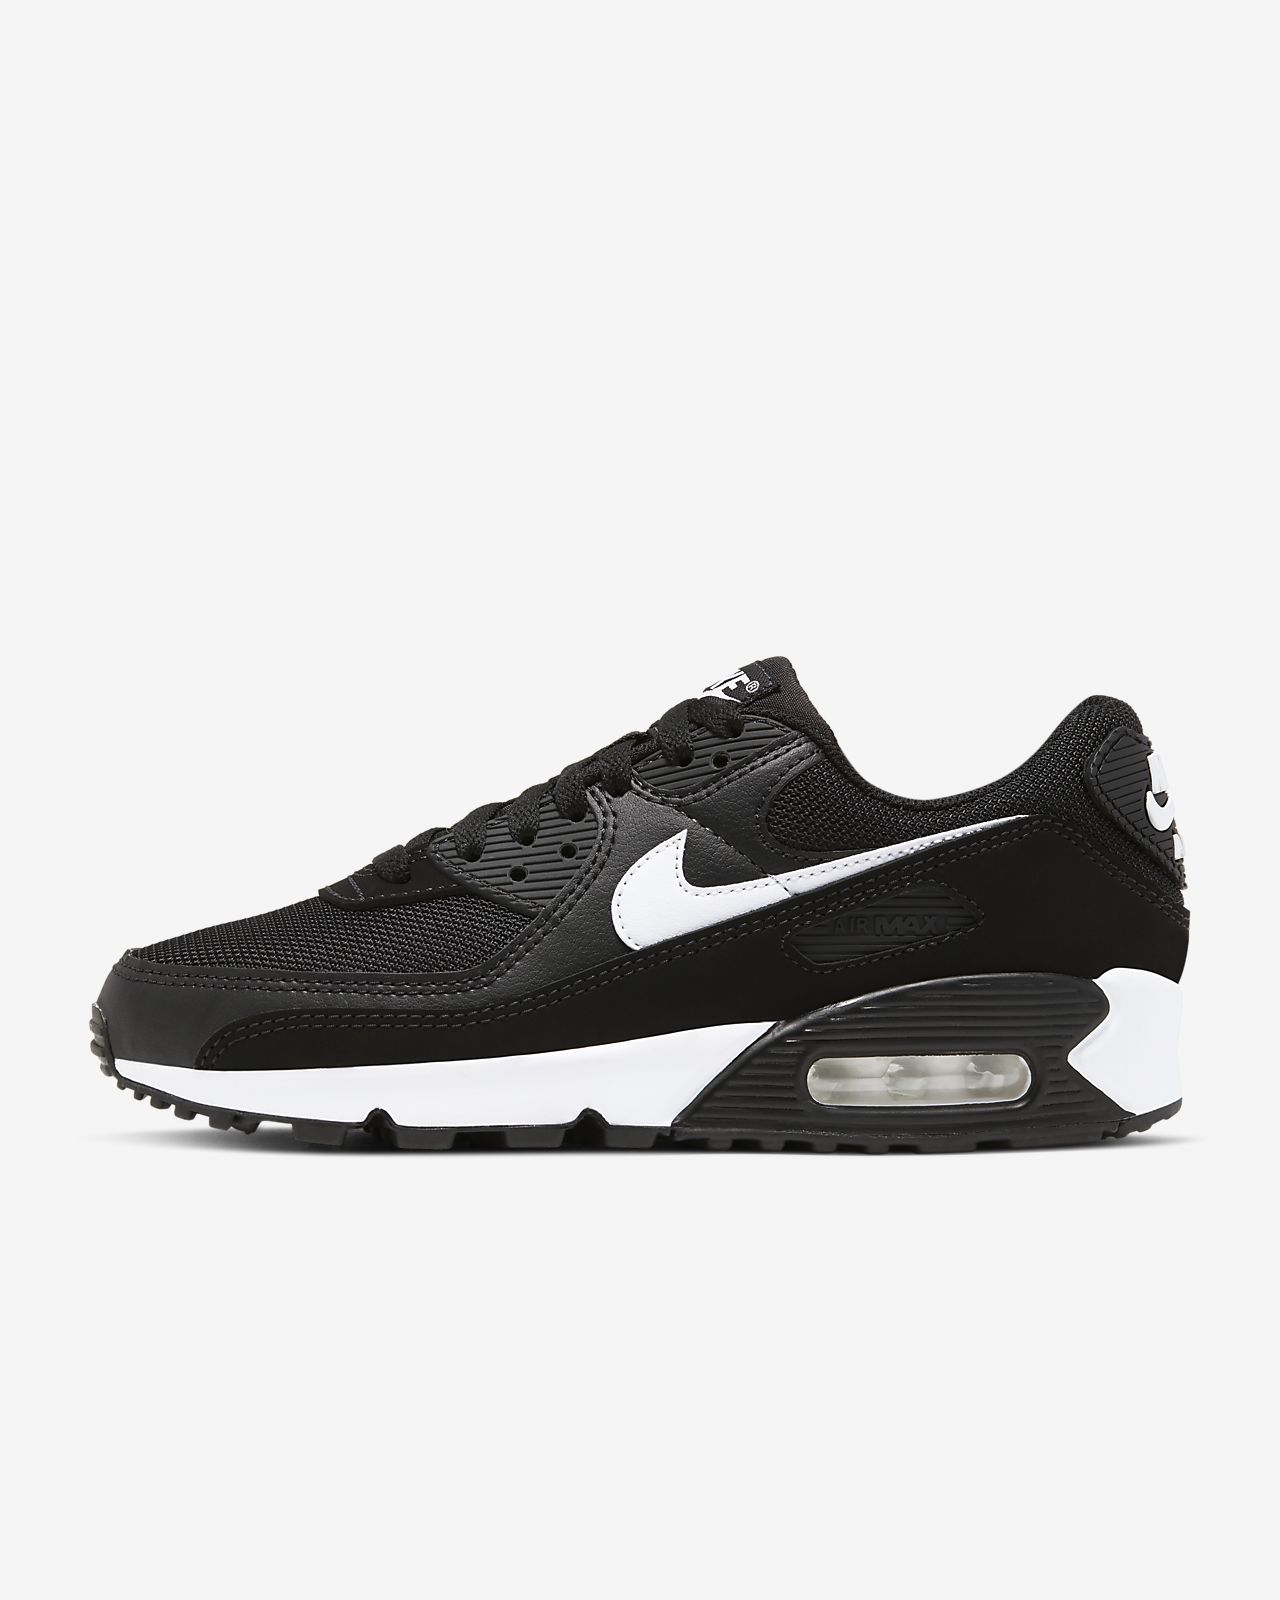 top fashion 100% high quality official shop Chaussure Nike Air Max 90 pour Femme. Nike FR